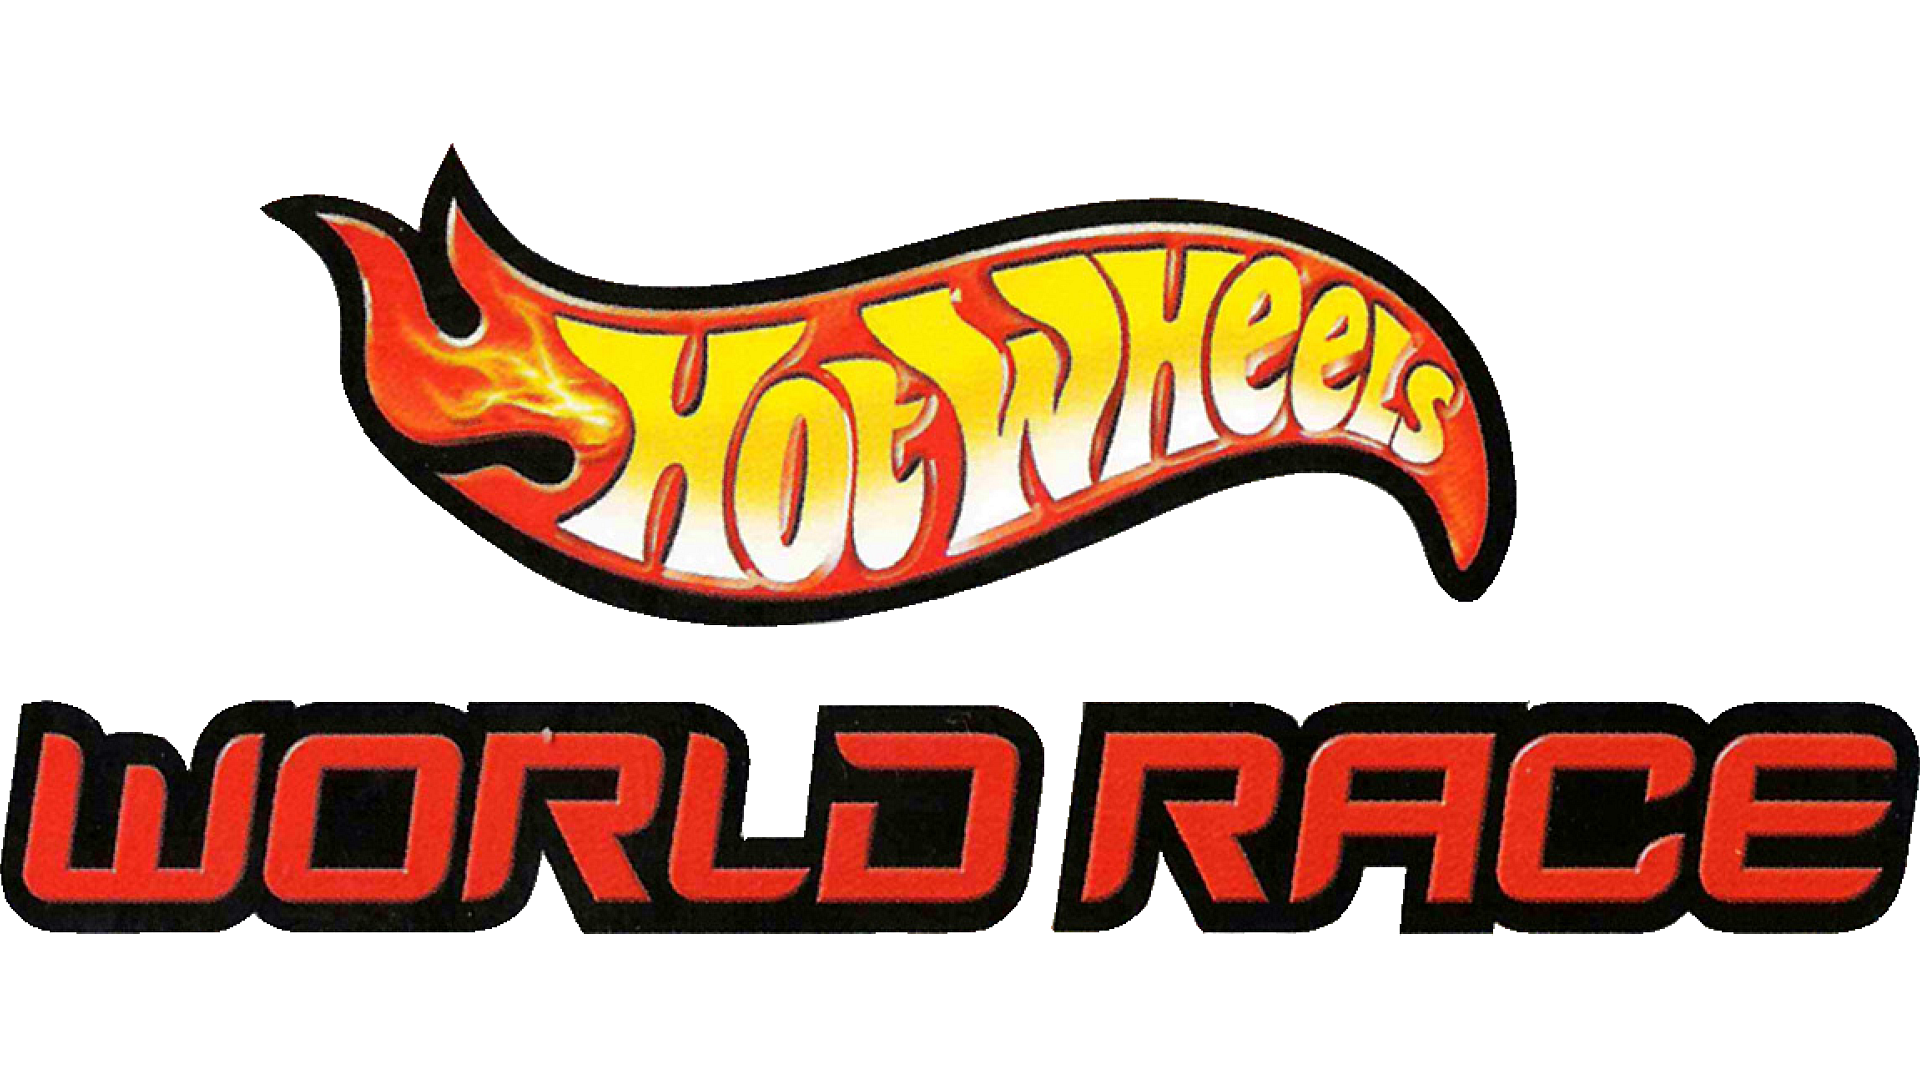 Hot Wheels clipart motor racing Cliparts The Race Clipart Wheels